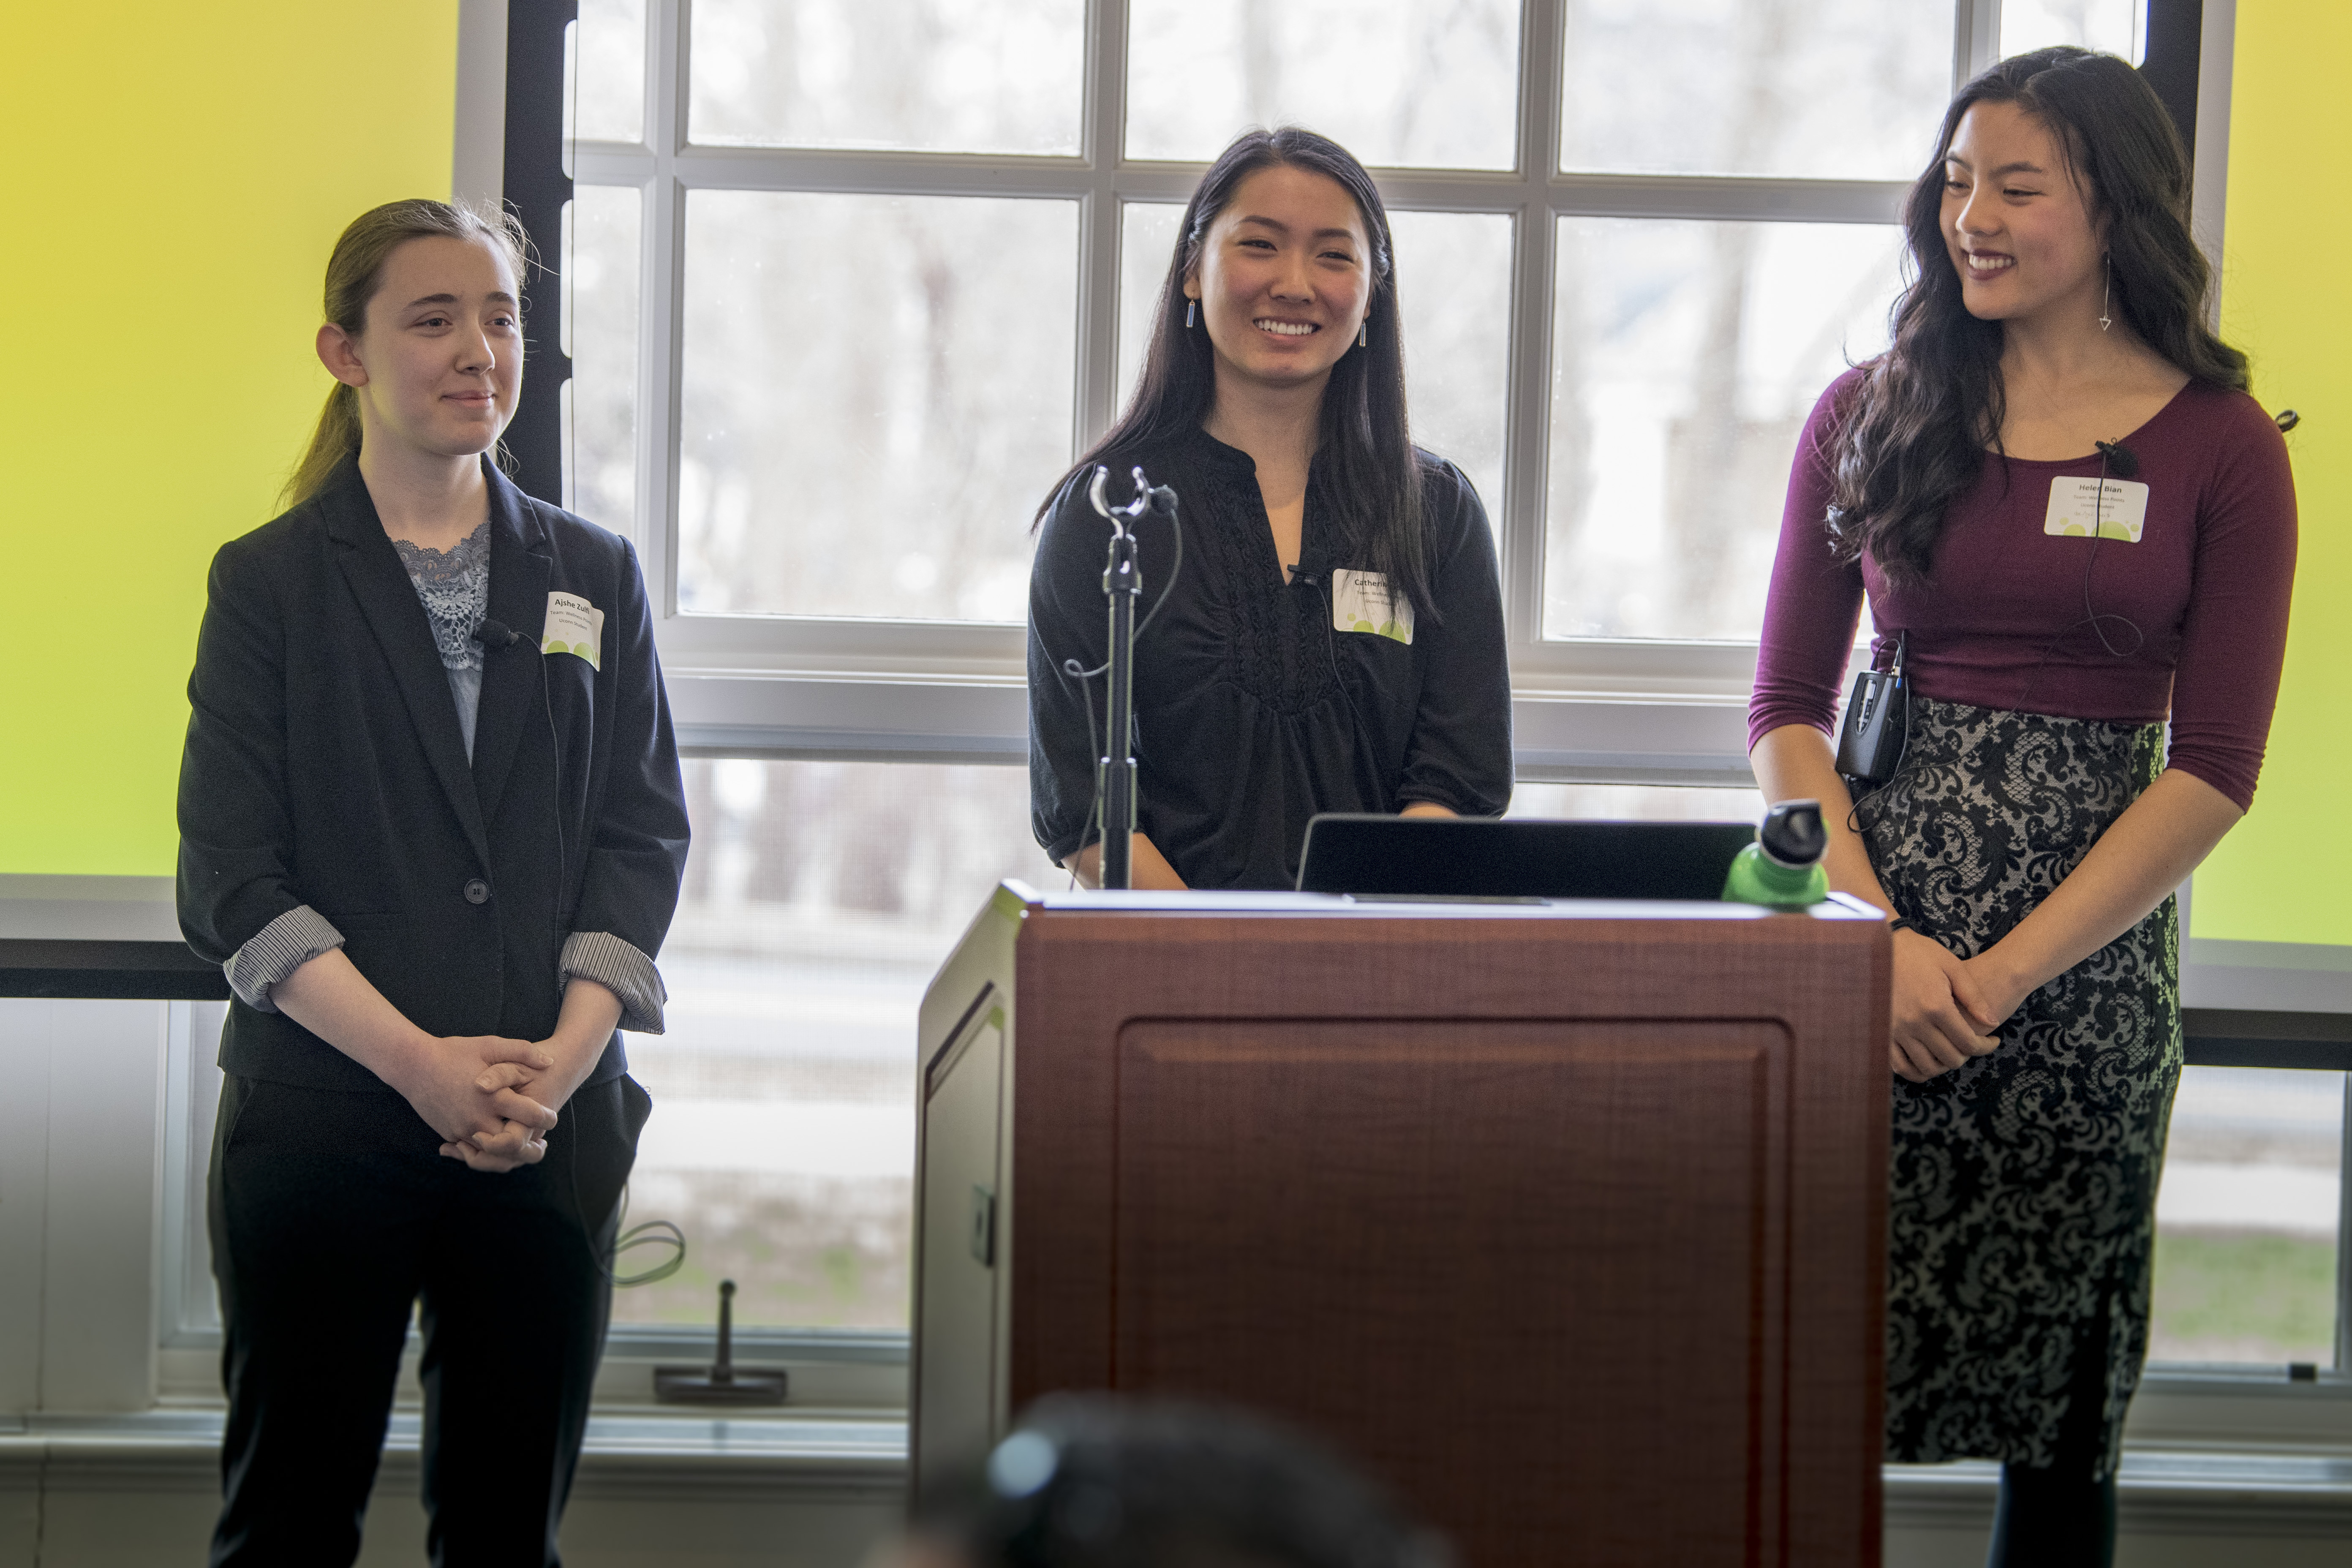 From left, Ajshe Zulfi '21 (BUS), Catherine Qiu '21 (CLAS), and Helen Bian '21 (CLAS) won the 2019 Wellness Case Competition on April 5 with their proposal for 'Wellness Points' to foster student well-being. (Sean Flynn/UConn Photo)